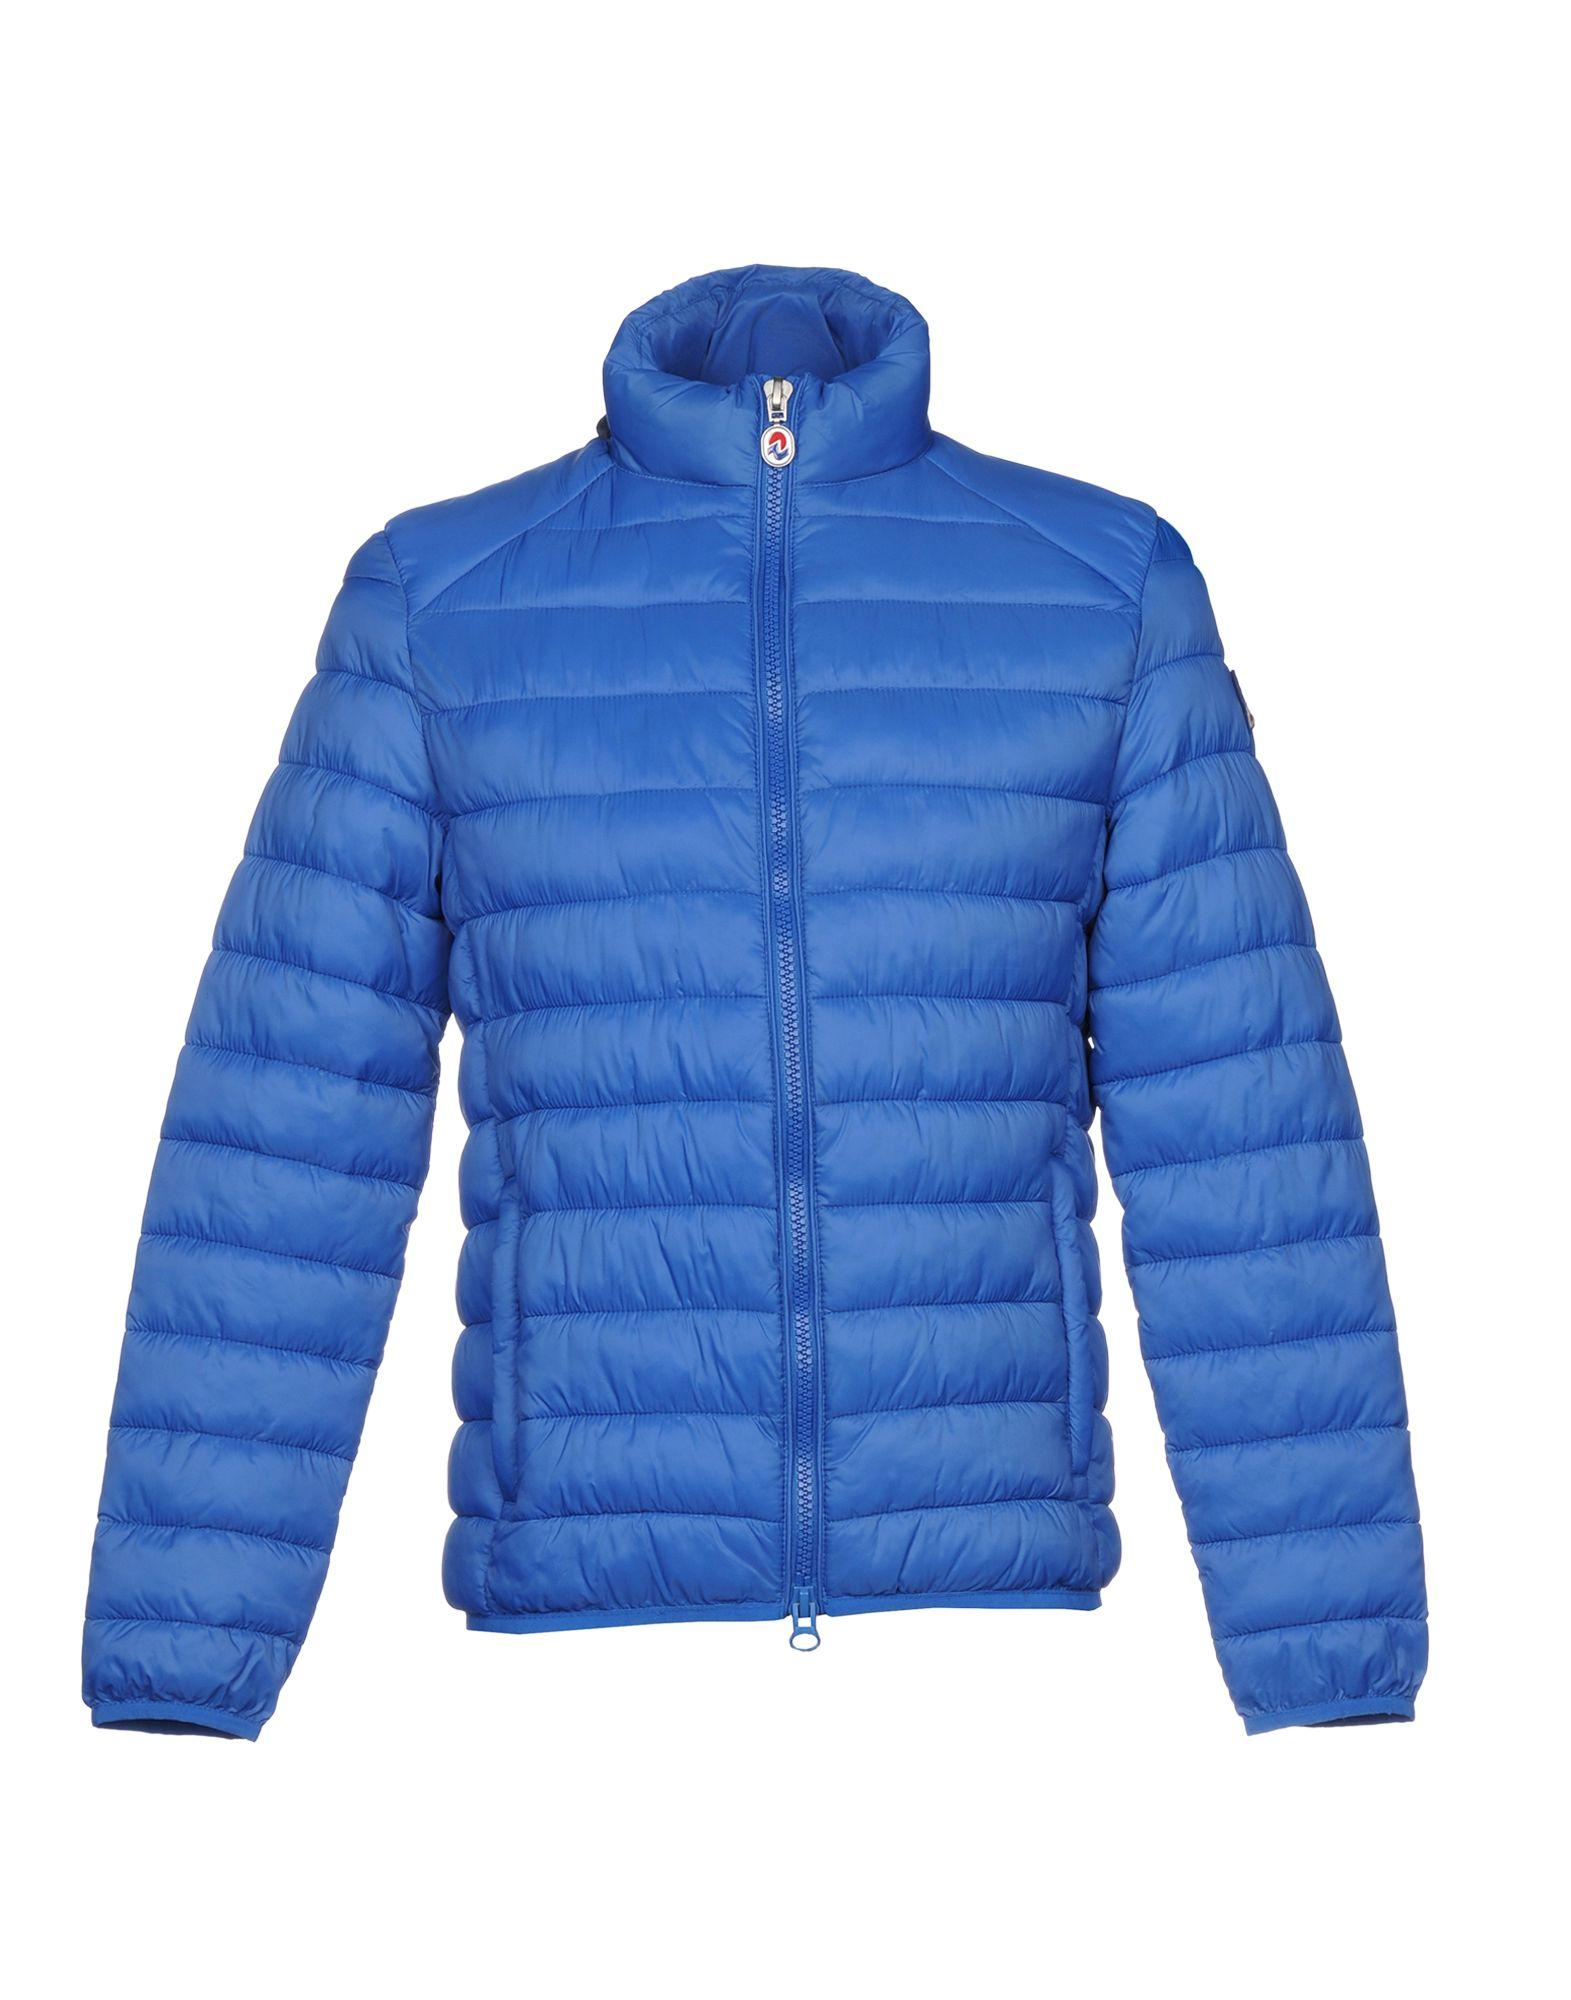 Invicta Jacket In Blue